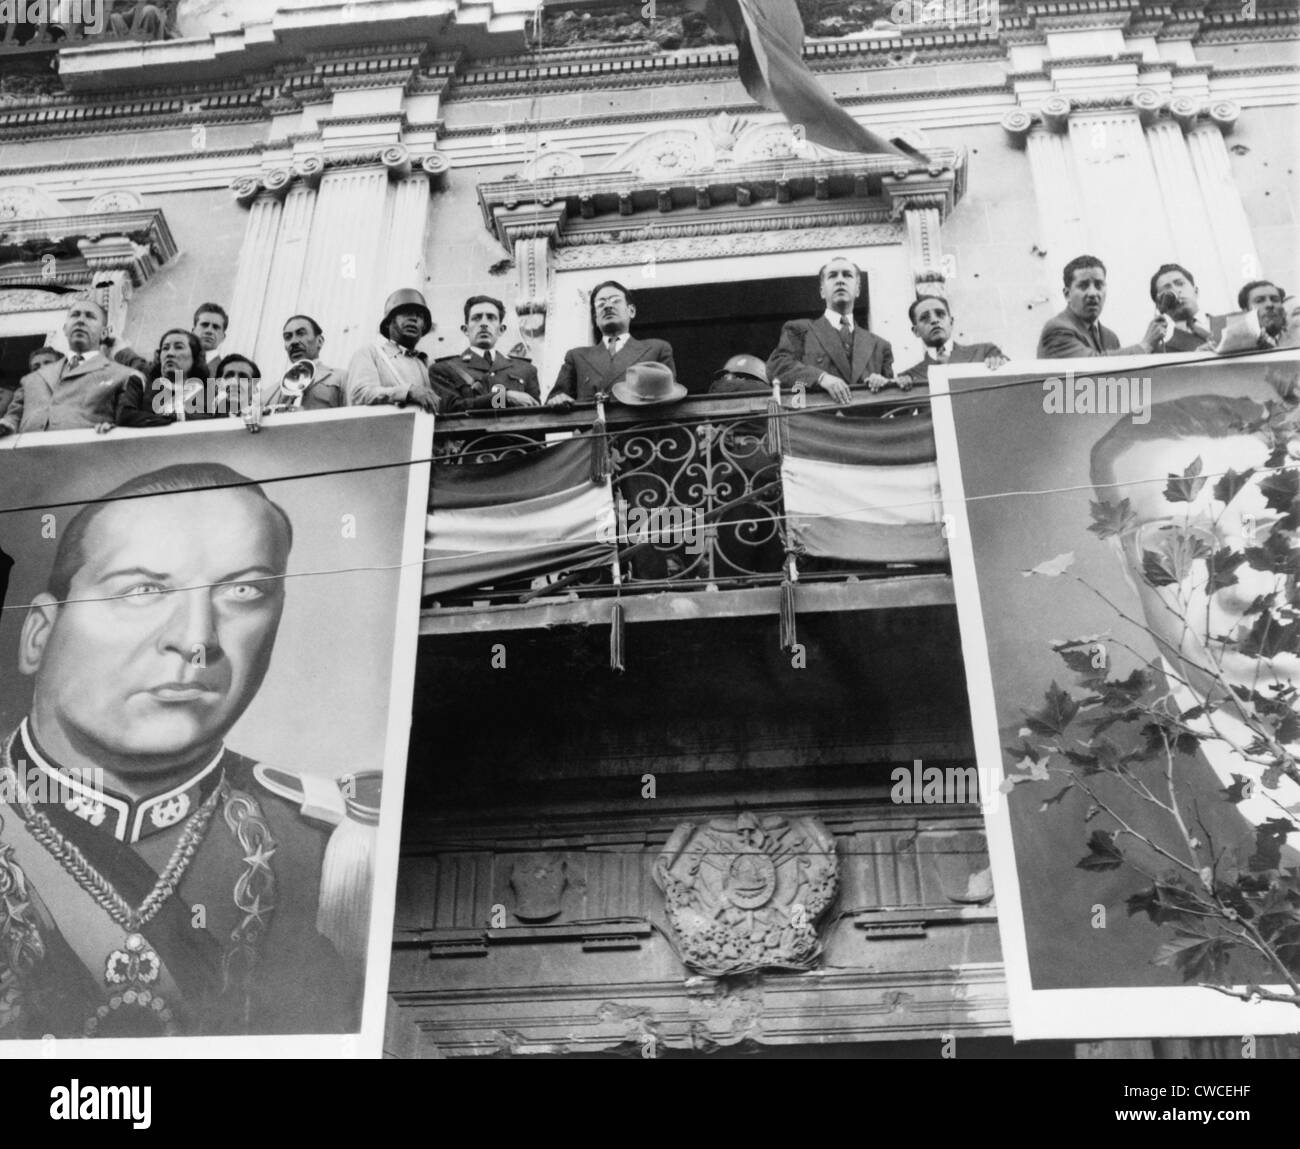 Bolivian Political Celebration. The Bolivian Cabinet Awaits The Arrival Of  President Victor Paz Estenssoro. The Balcony Is